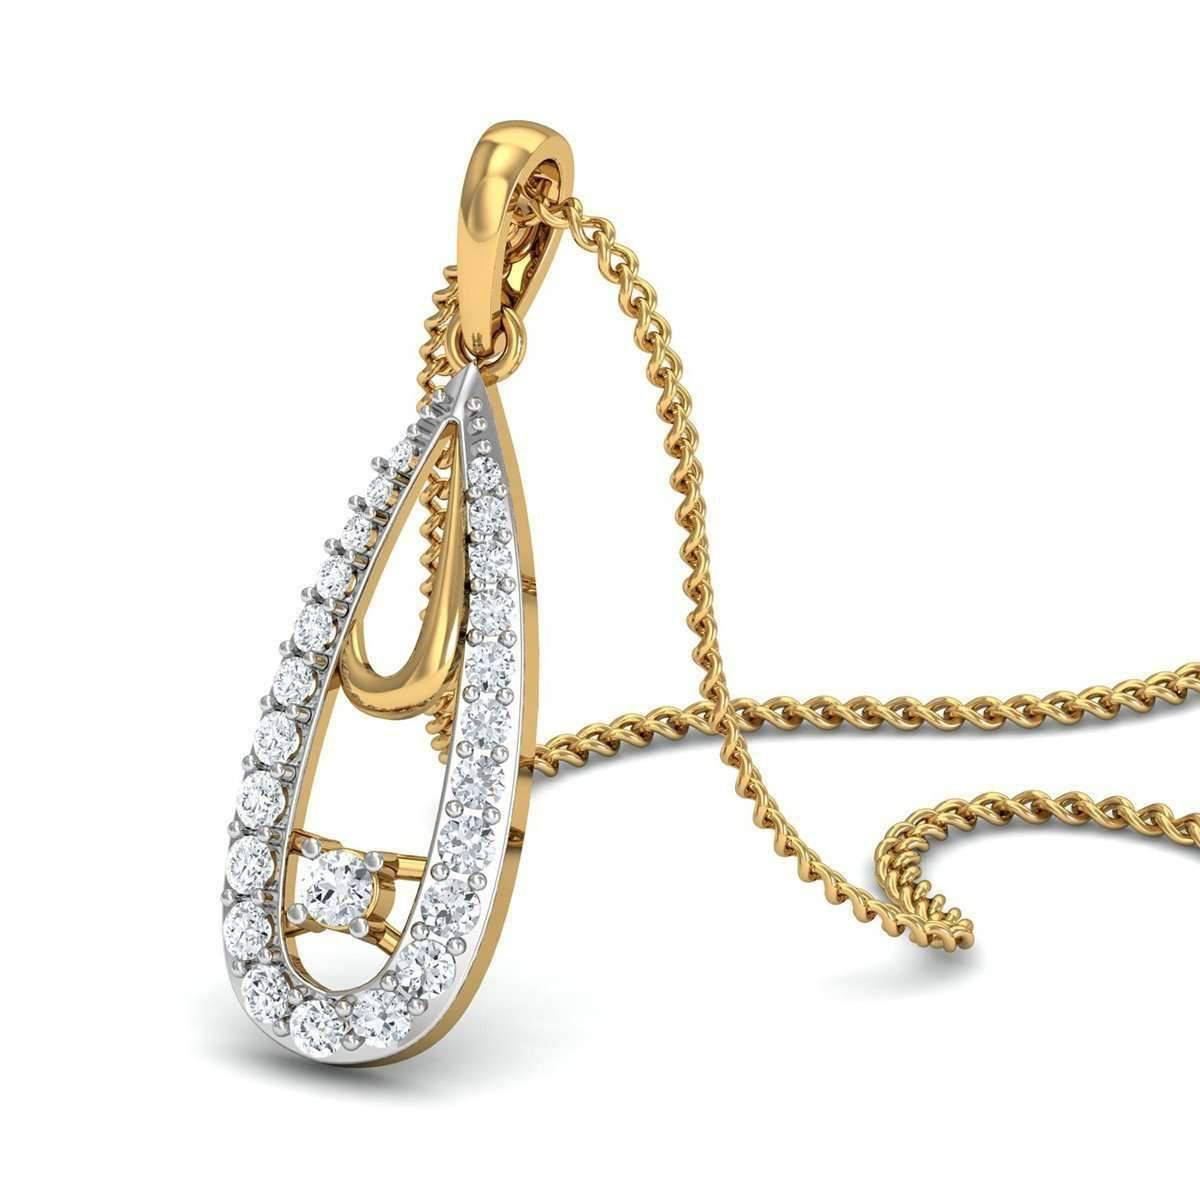 Diamoire Jewels Pave 10kt Yellow Gold and Diamond Nature Inspired Water-drop Pendant 7LFTS